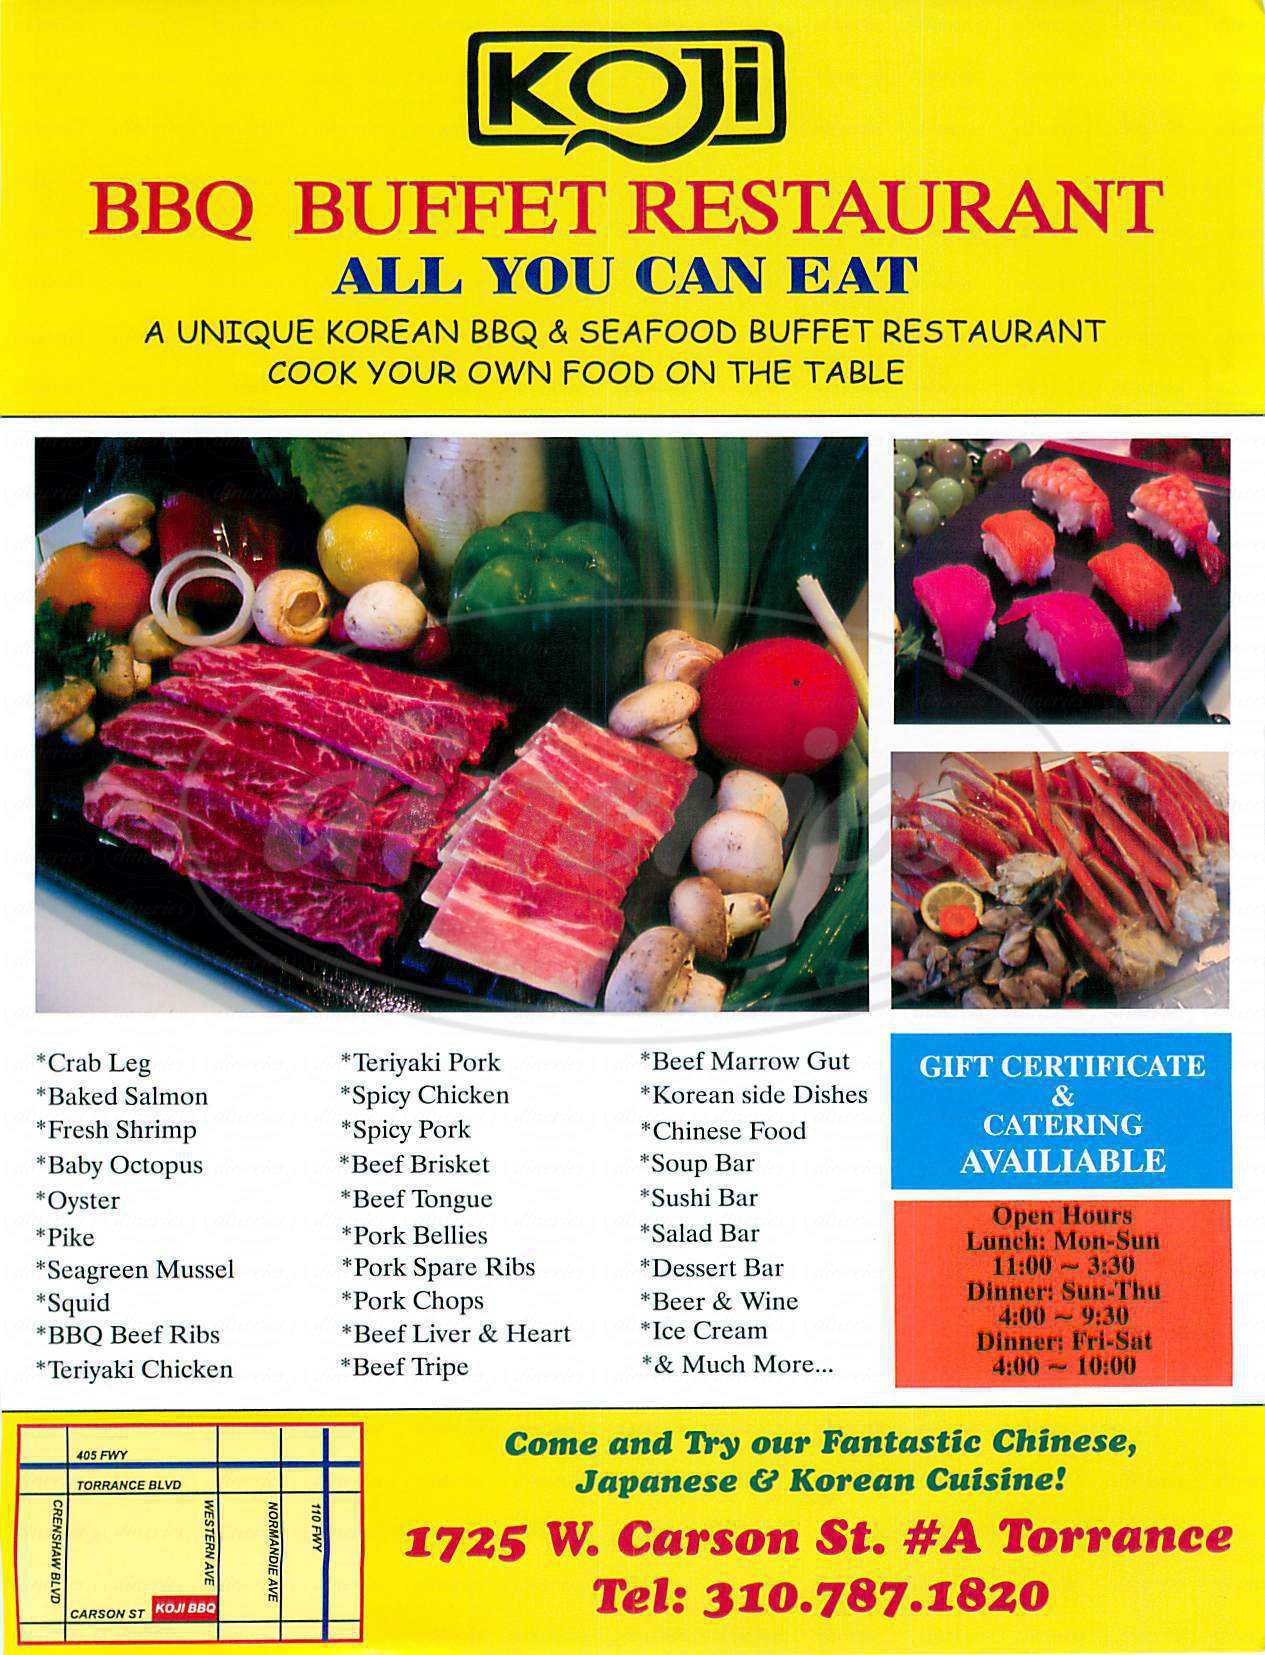 menu for Koji Bbq Buffet